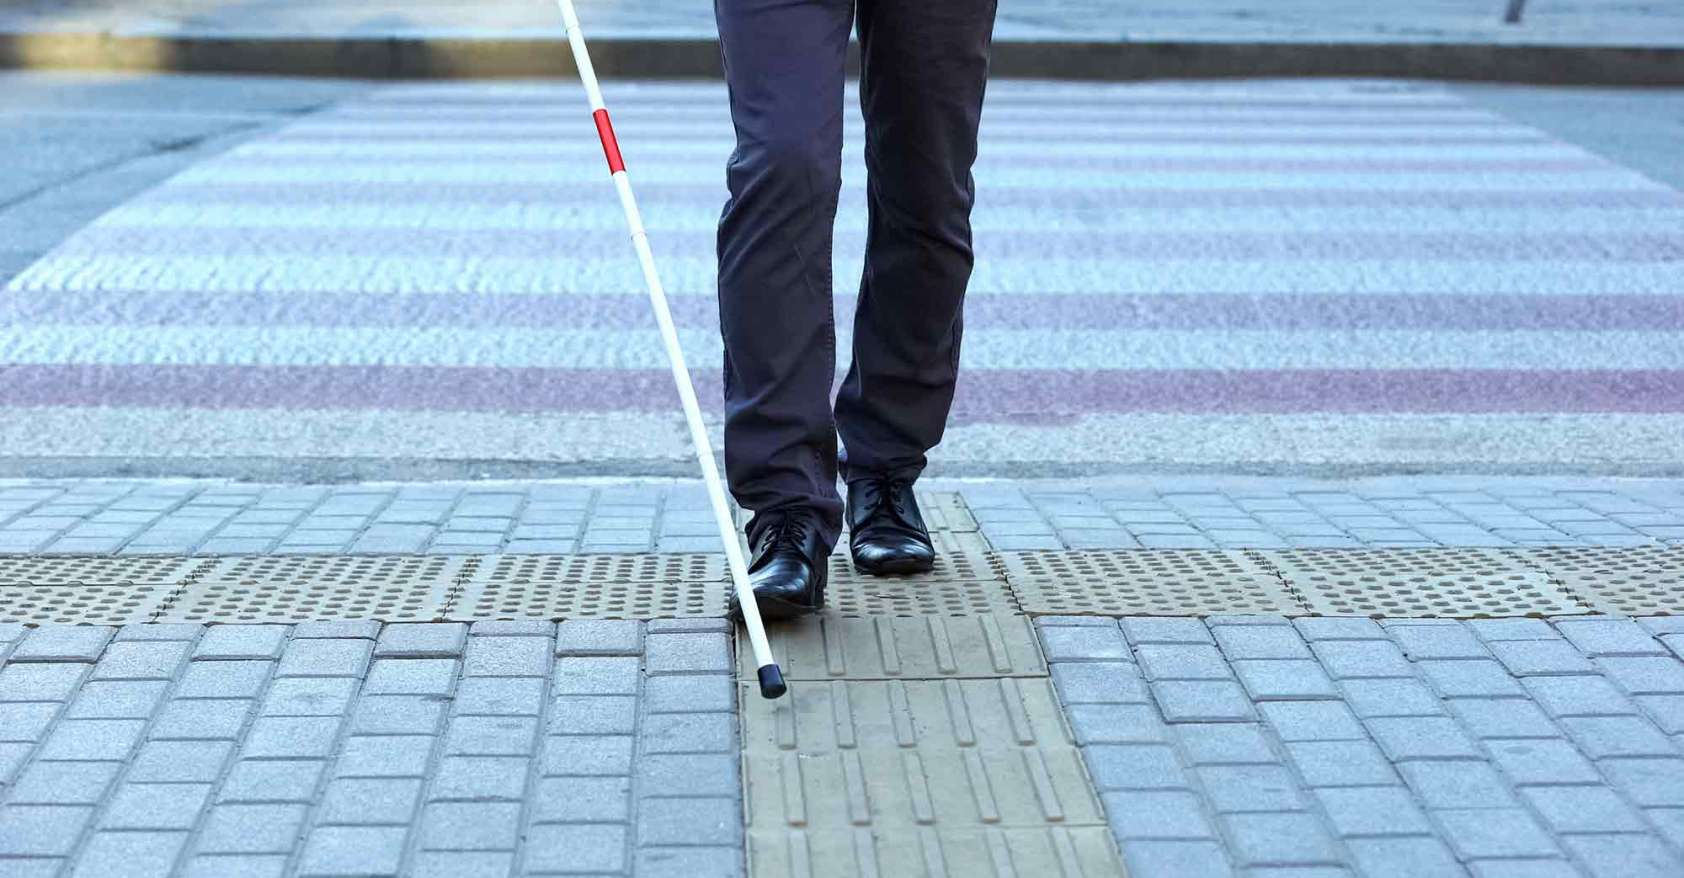 Visually impaired man using tactile tiles to navigate city, finishing crossroad Disability diplomat